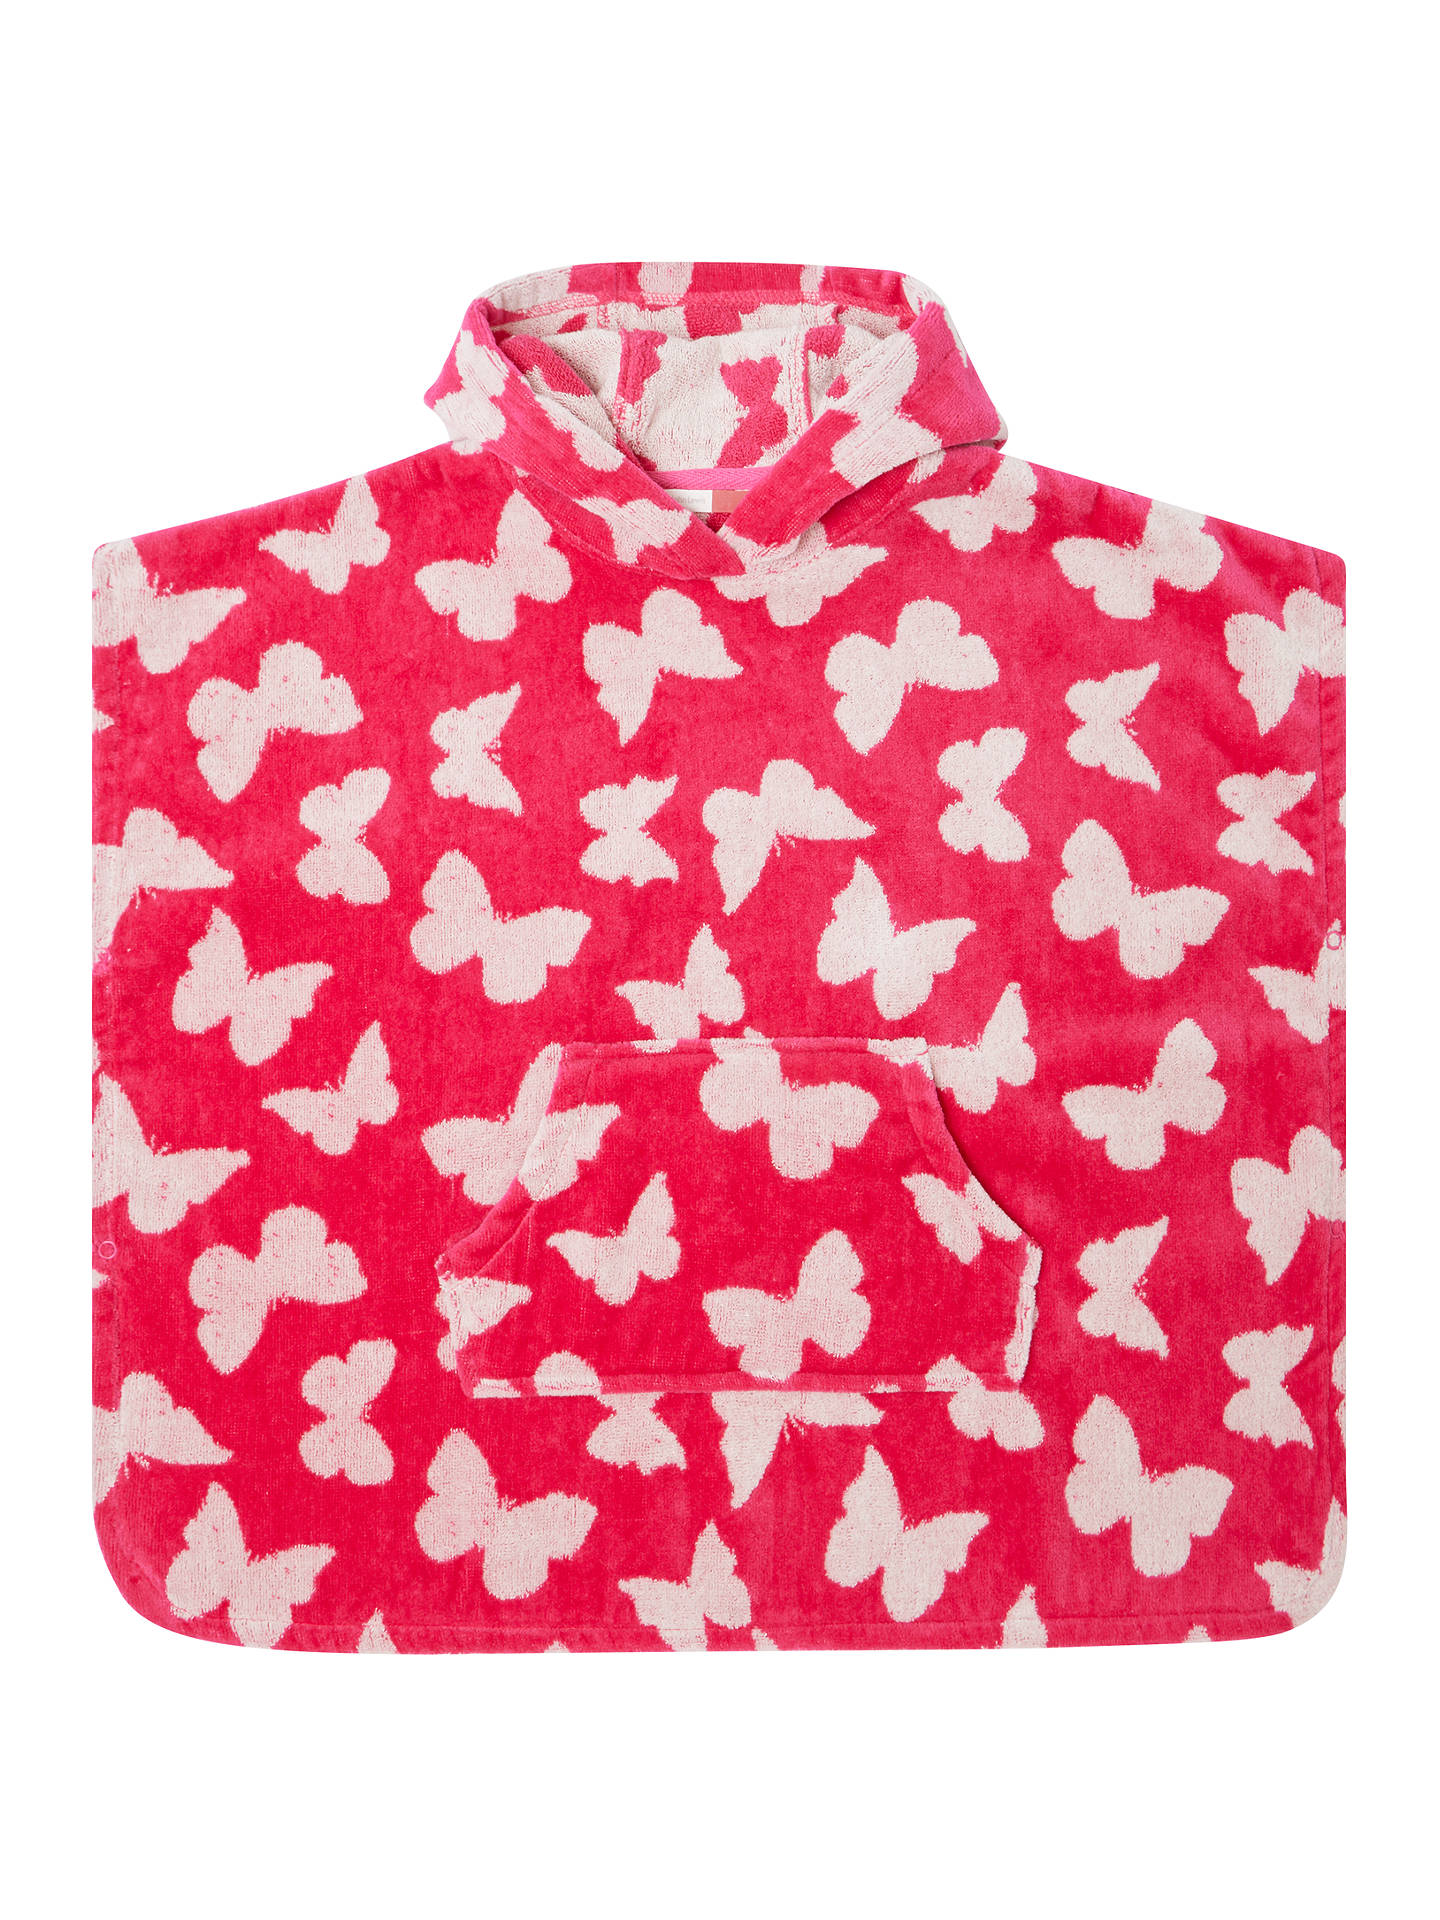 0421c8f99 Buy John Lewis & Partners Girls' Butterfly Towel Poncho, Pink, S Online at  ...